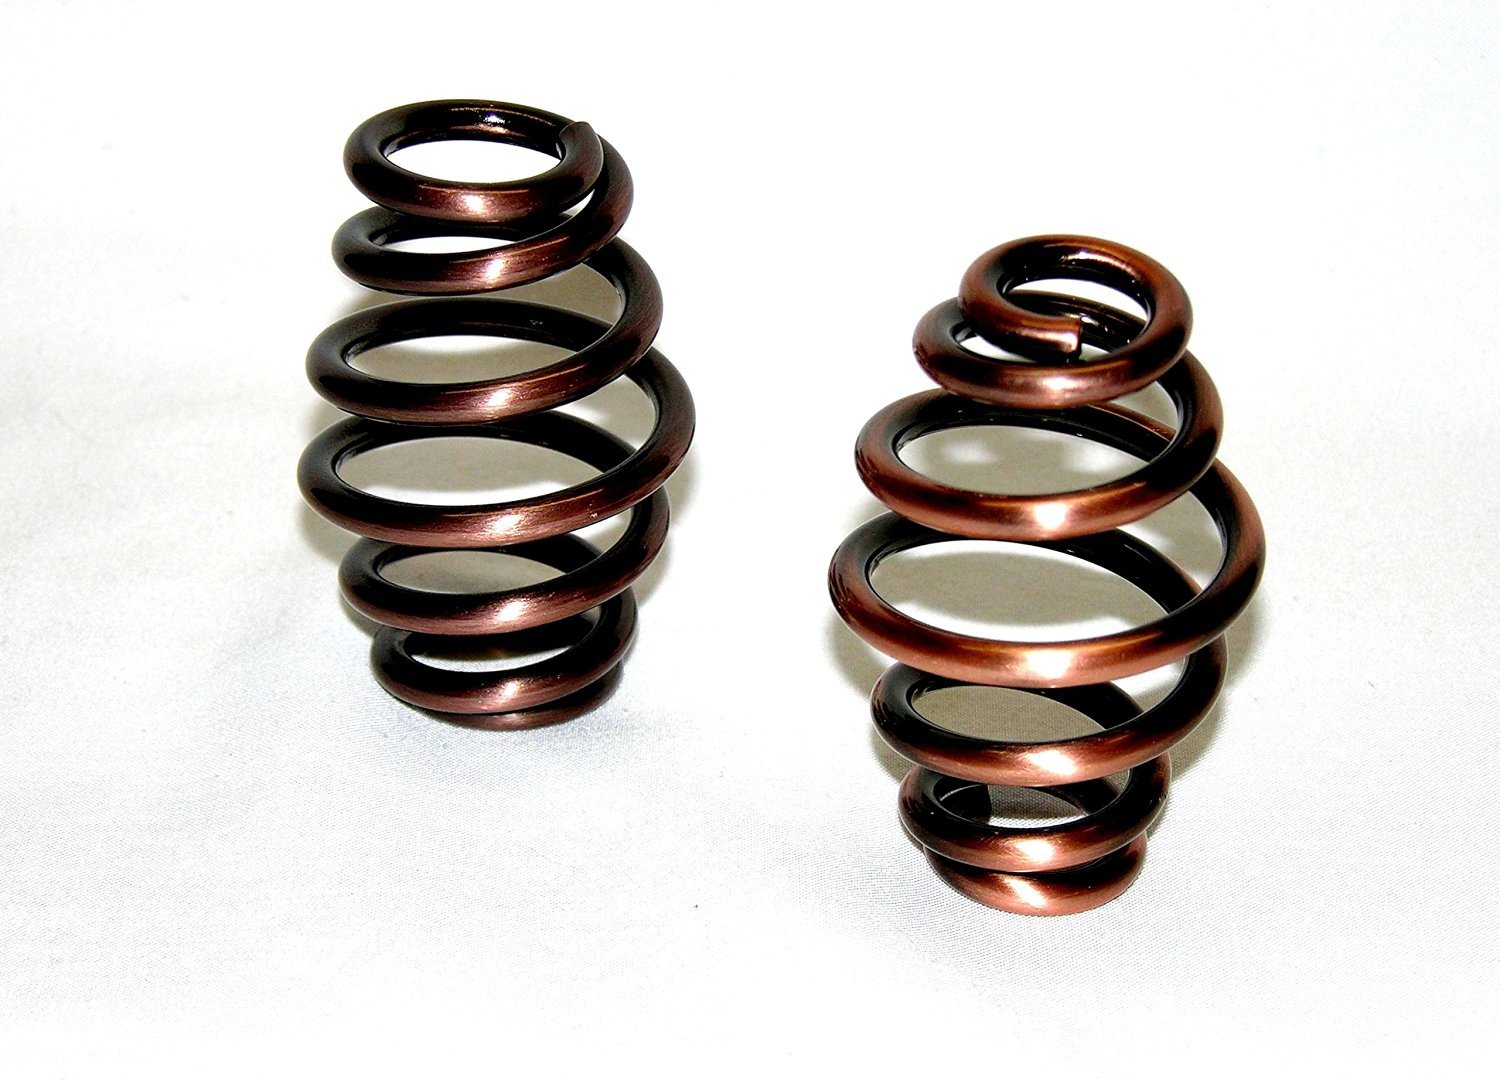 Mr Luckys Universal Fit Antique Copper finished 3 inch Solo Seat Springs for Harley, Bobber, Vintage, Retro, Custom.